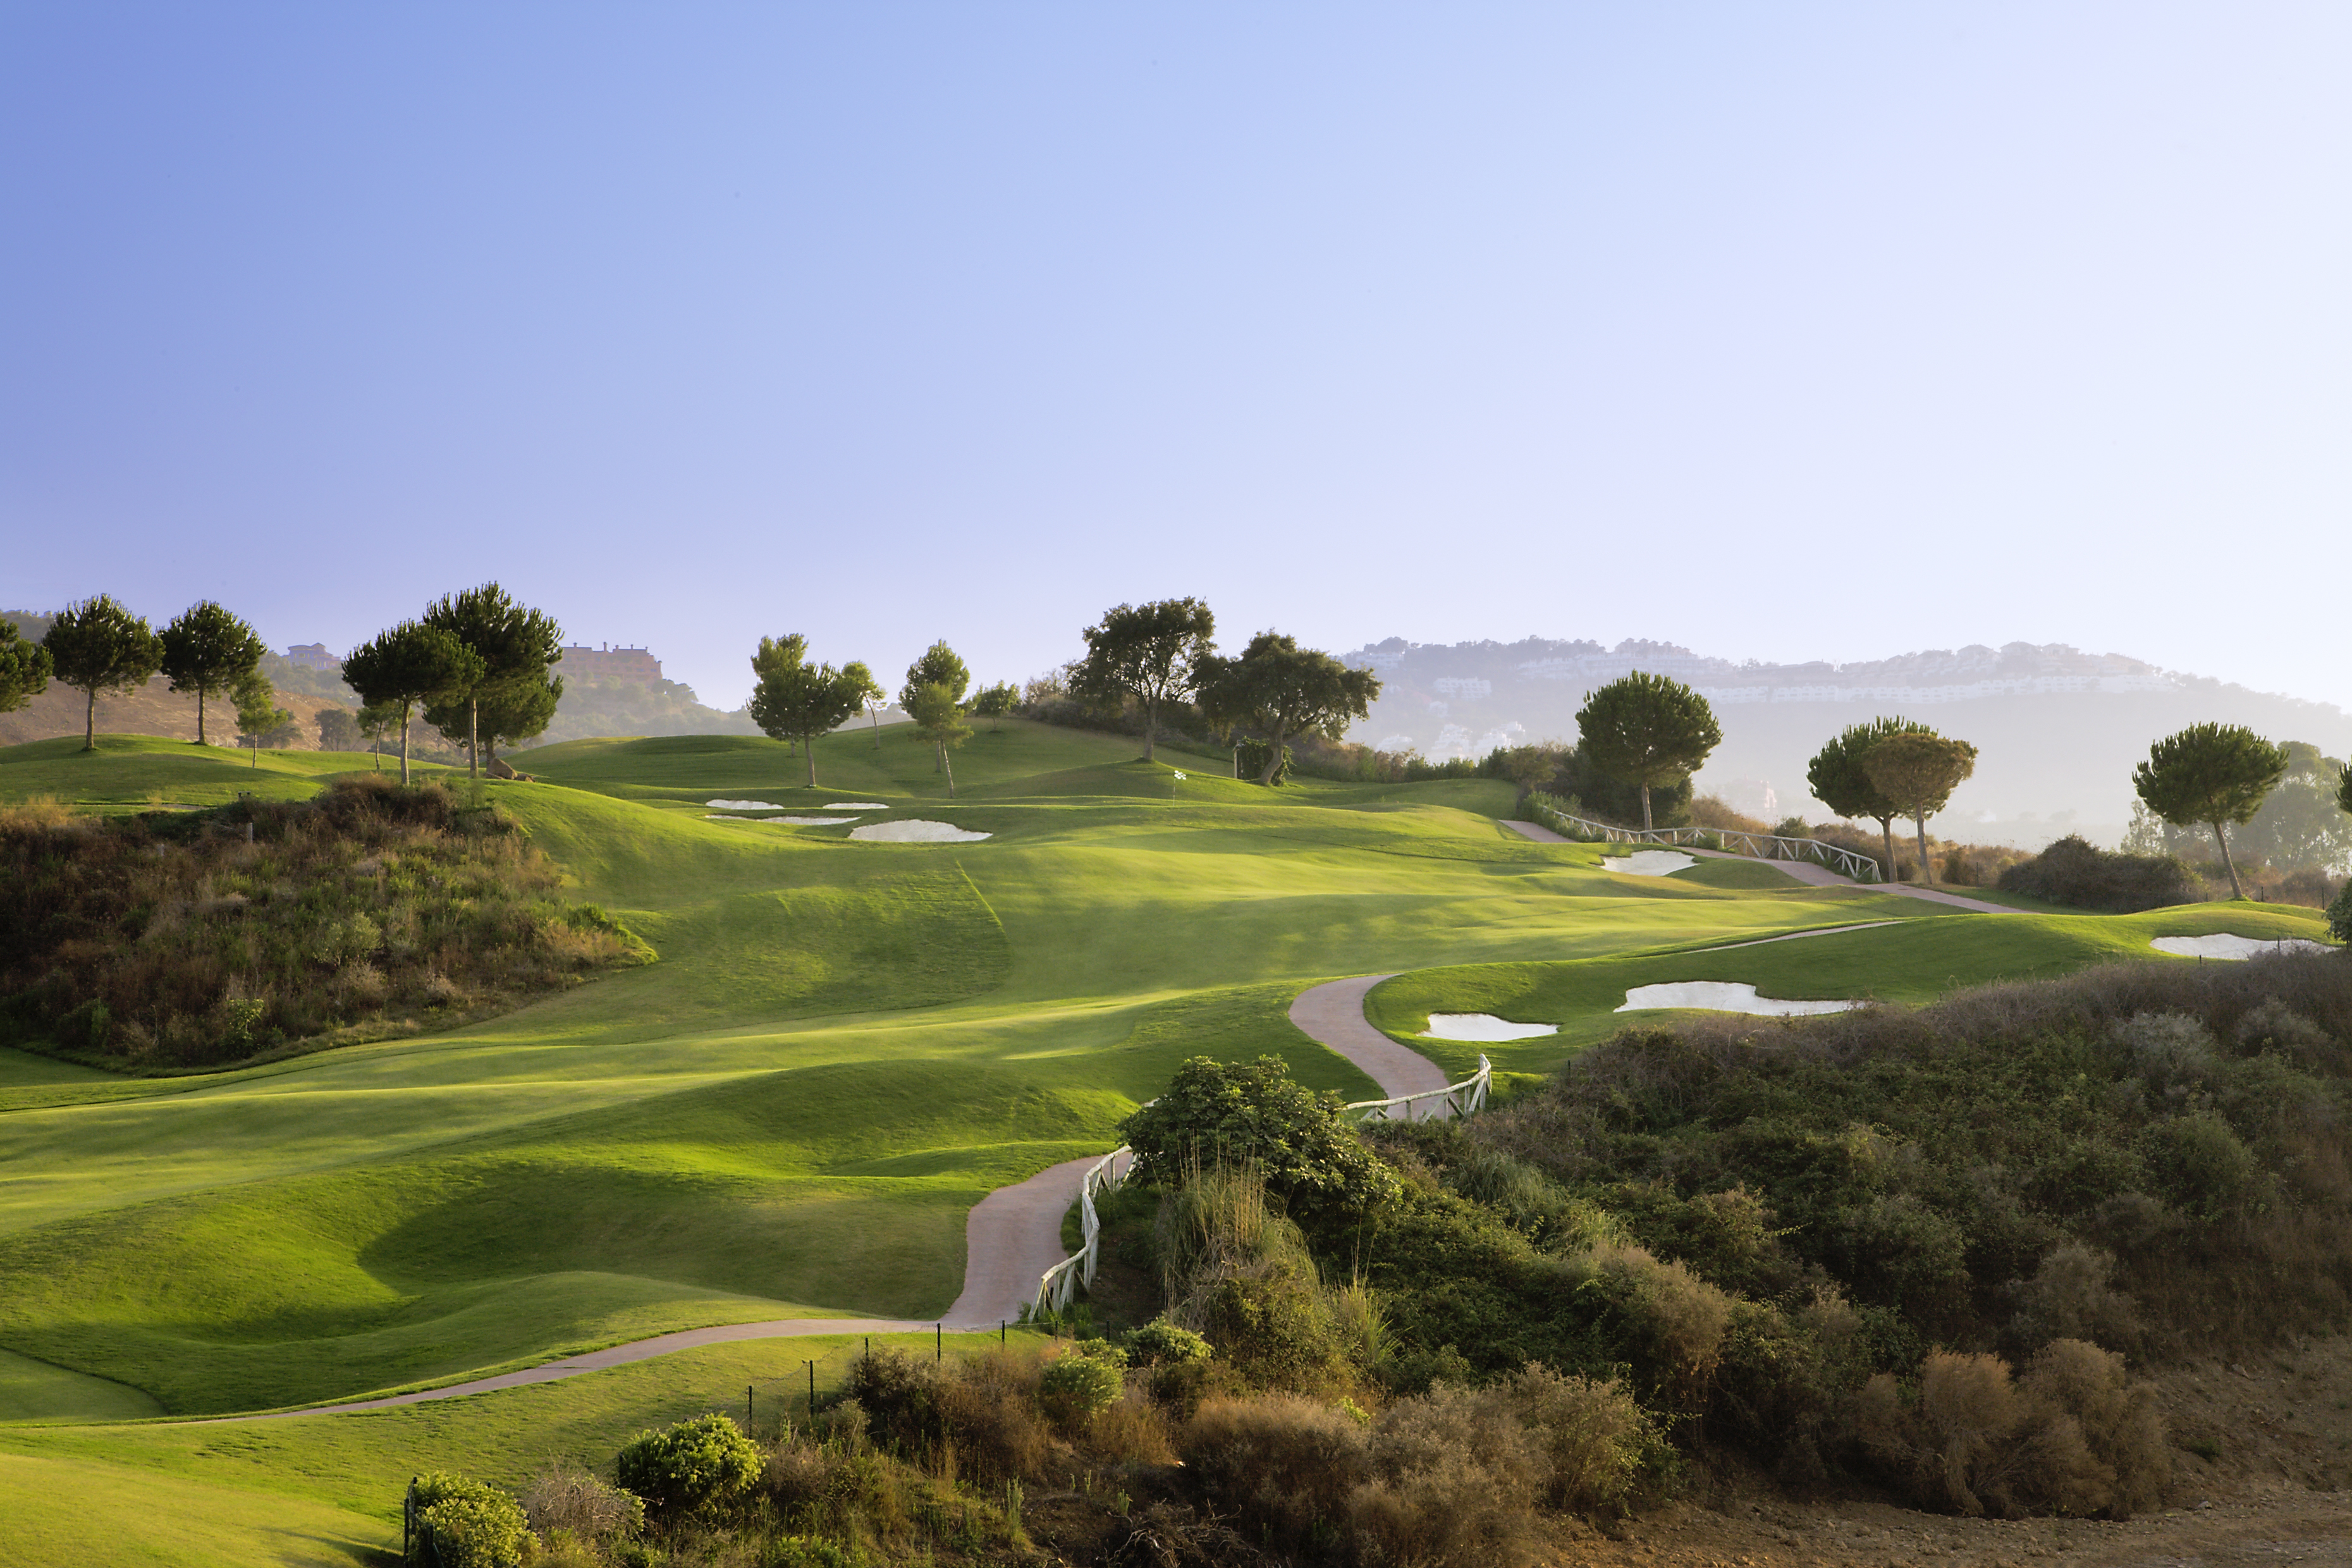 Overview of golf course named La Cala Resort